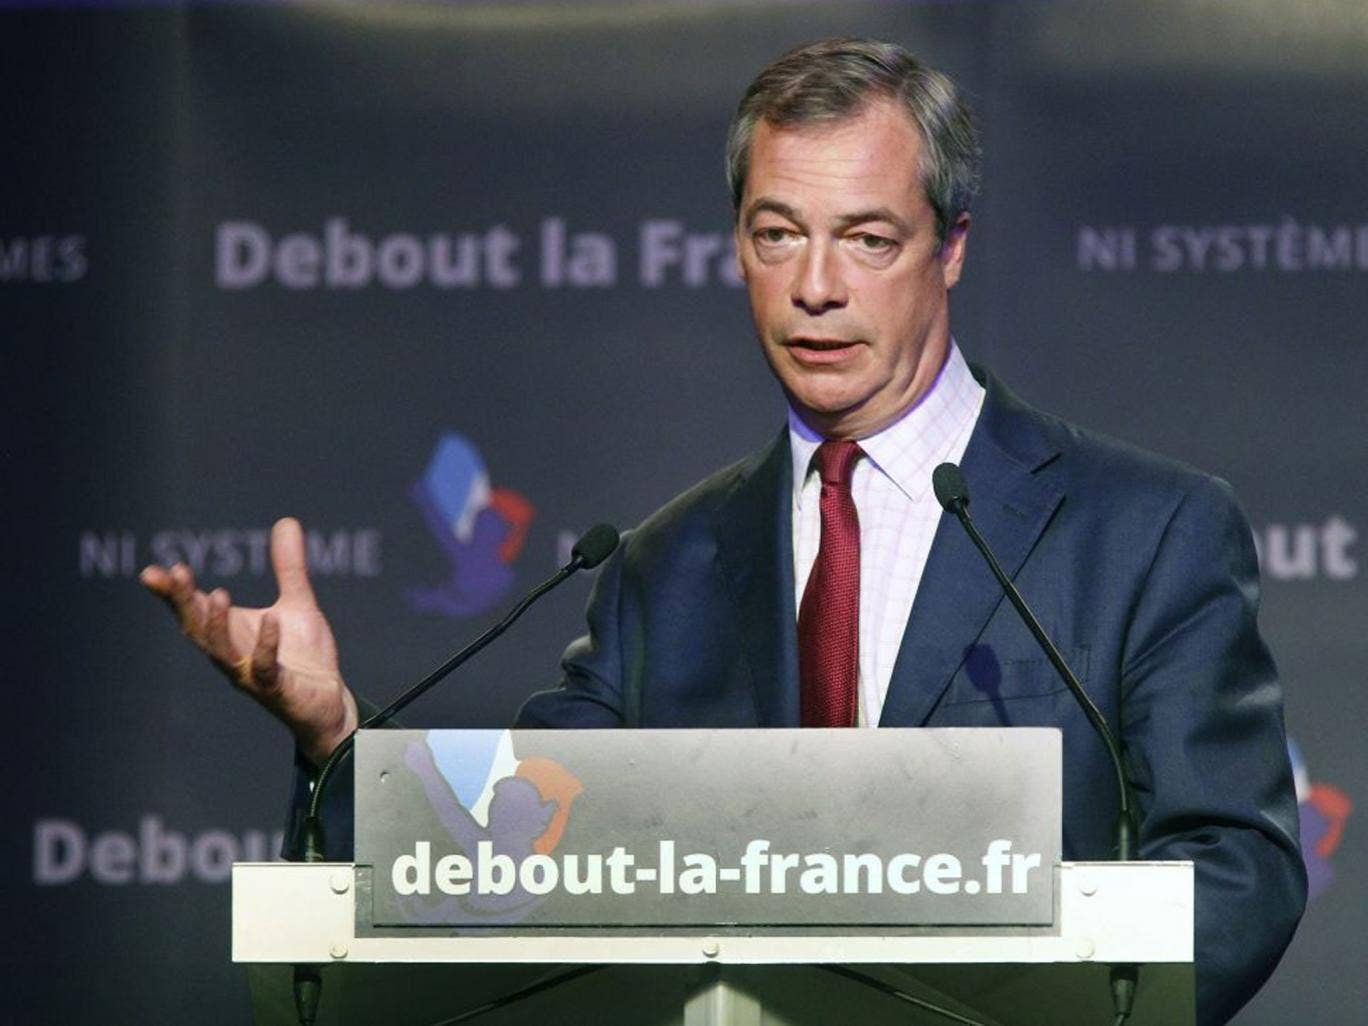 Nigel Farage delivering his speech during a political meeting with French conservative party Debout La Republique in Paris.